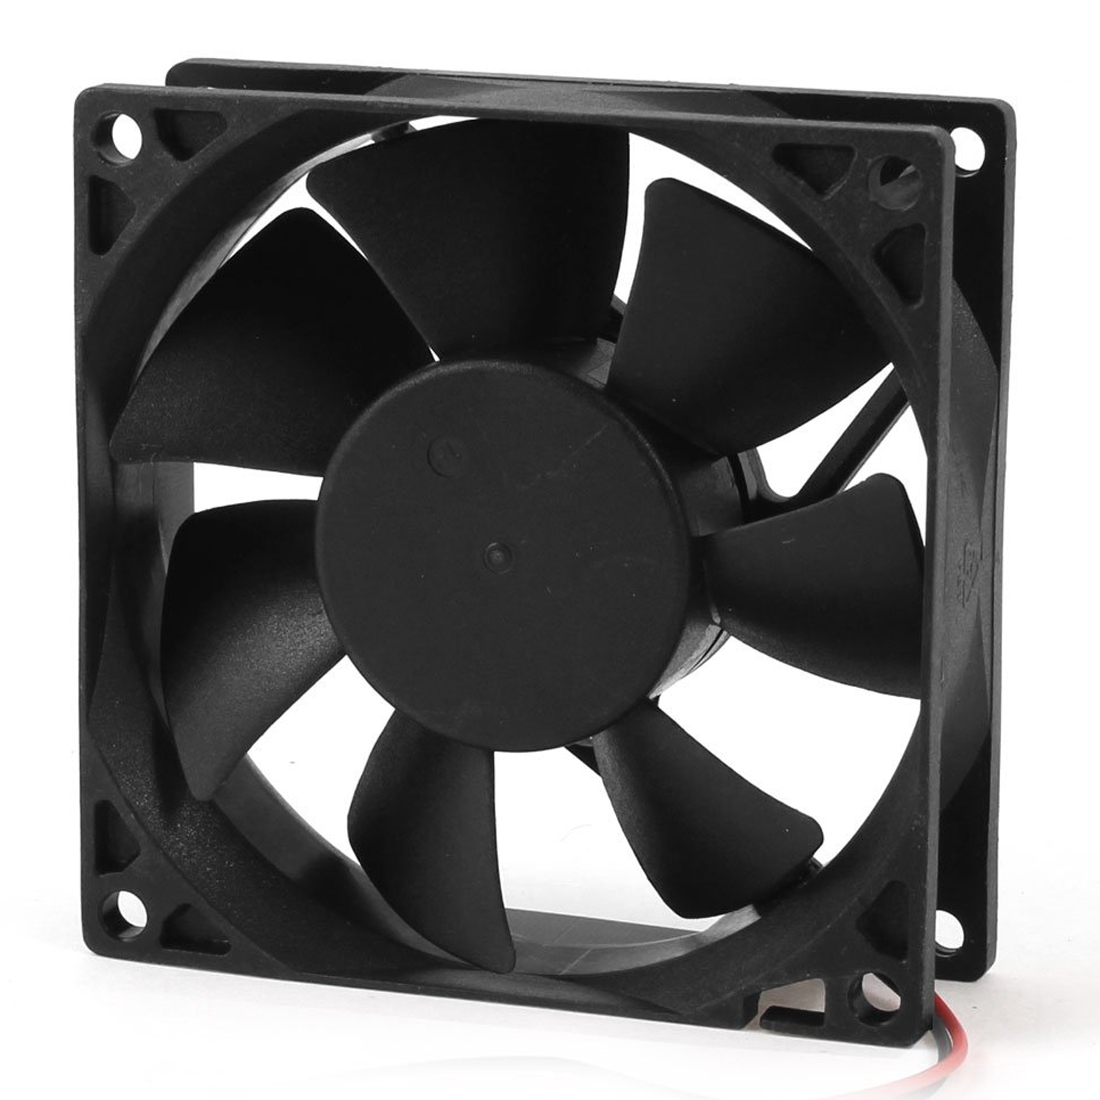 80mm DC 12V 2pin PC Computer Desktop Case CPU Cooler Cooling Fan amd intel universally practical cpu cooling fan heatsink heatpipe dc 12v fan for pc computer desktop cpu fans cooler